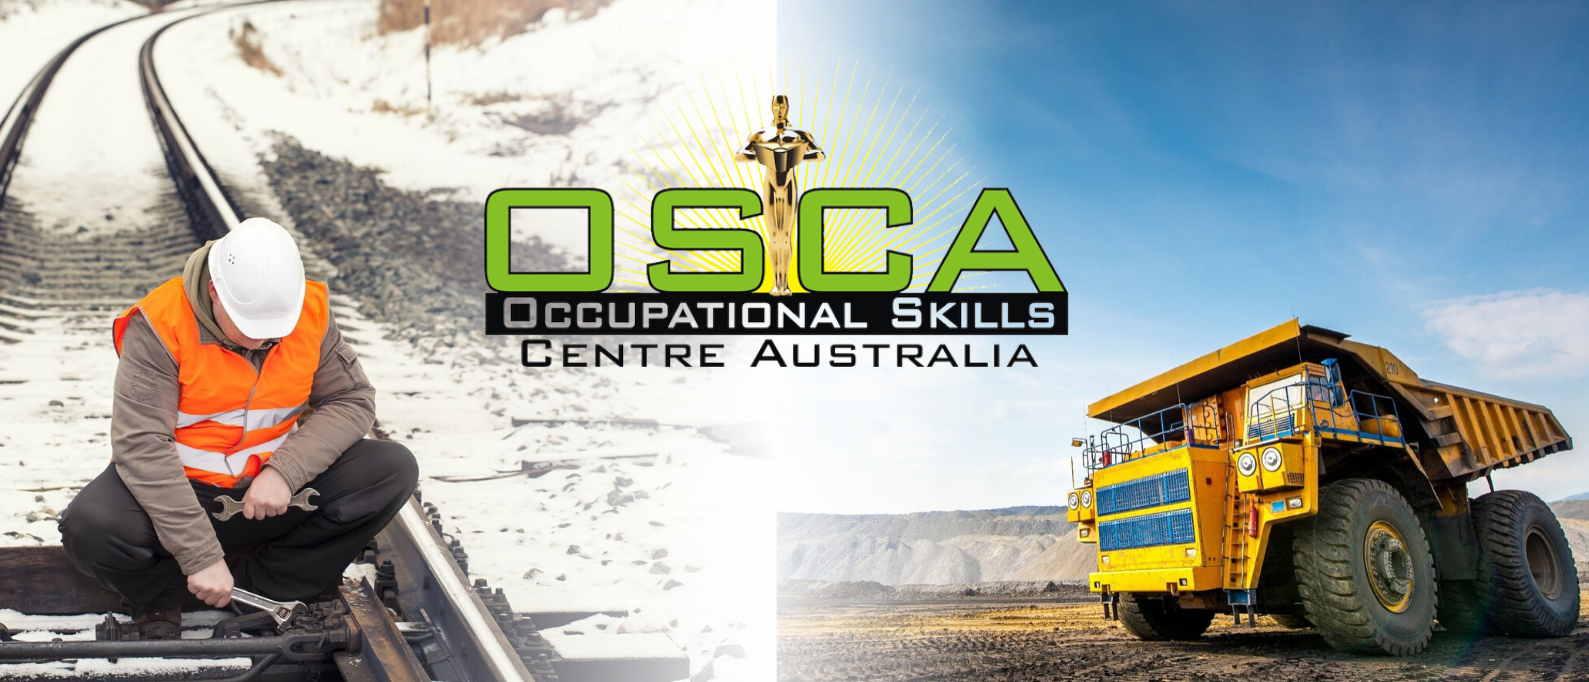 Occupational Skills Centre Cover Photo